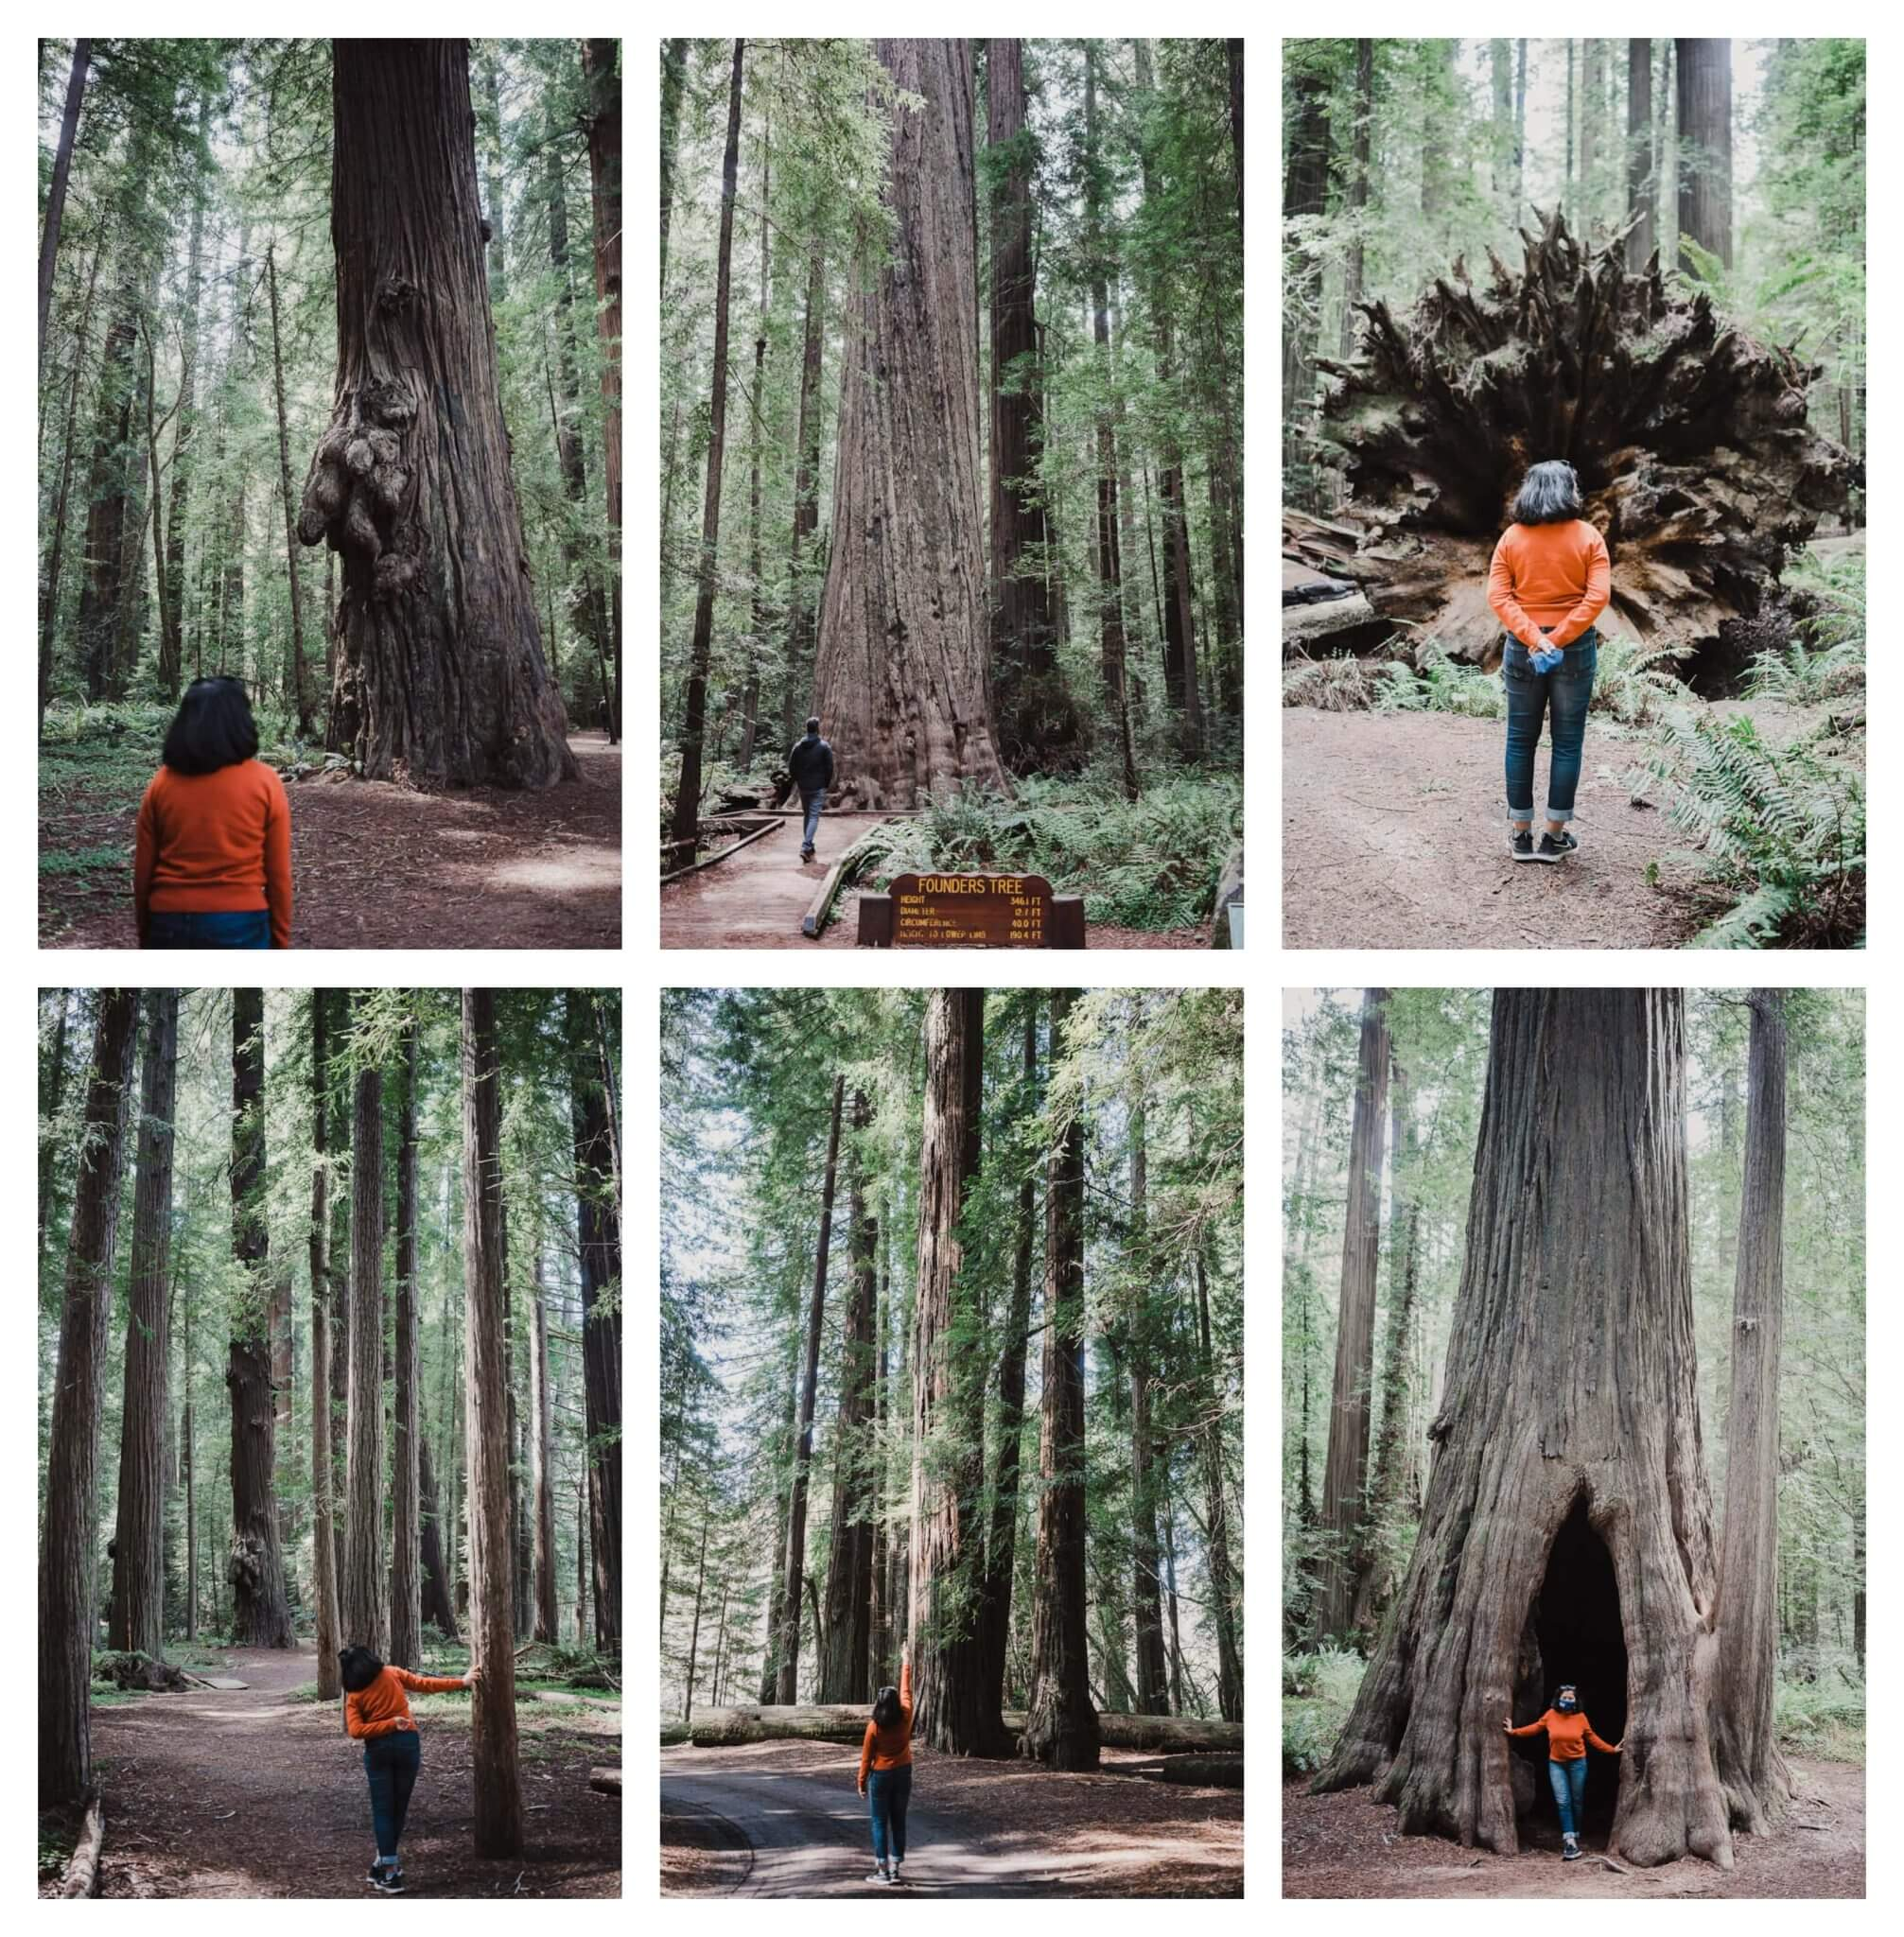 Things to do in Humboldt County: explore the Old growth Redwoods in Humboldt Redwoods State Park